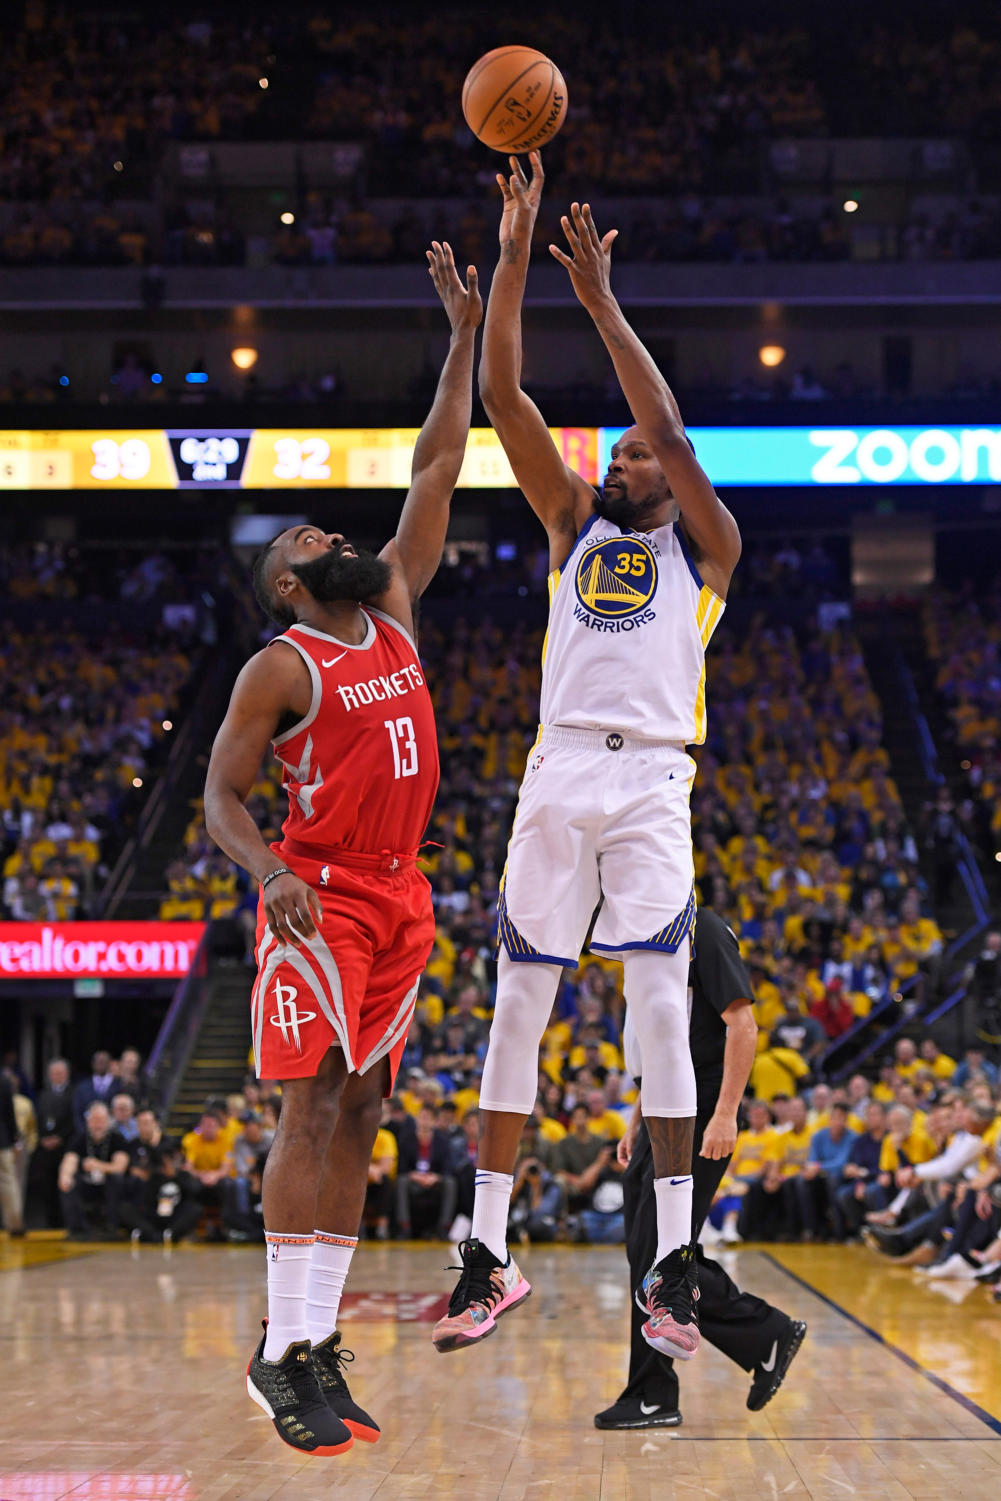 Golden State Warriors' Kevin Durant (35) shoots over Houston Rockets' James Harden (13) during the second quarter of Game 3 of the NBA Western Conference finals on May 20 at Oracle Arena in Oakland, Calif. (Jose Carlos Fajardo/Bay Area News Group/TNS)